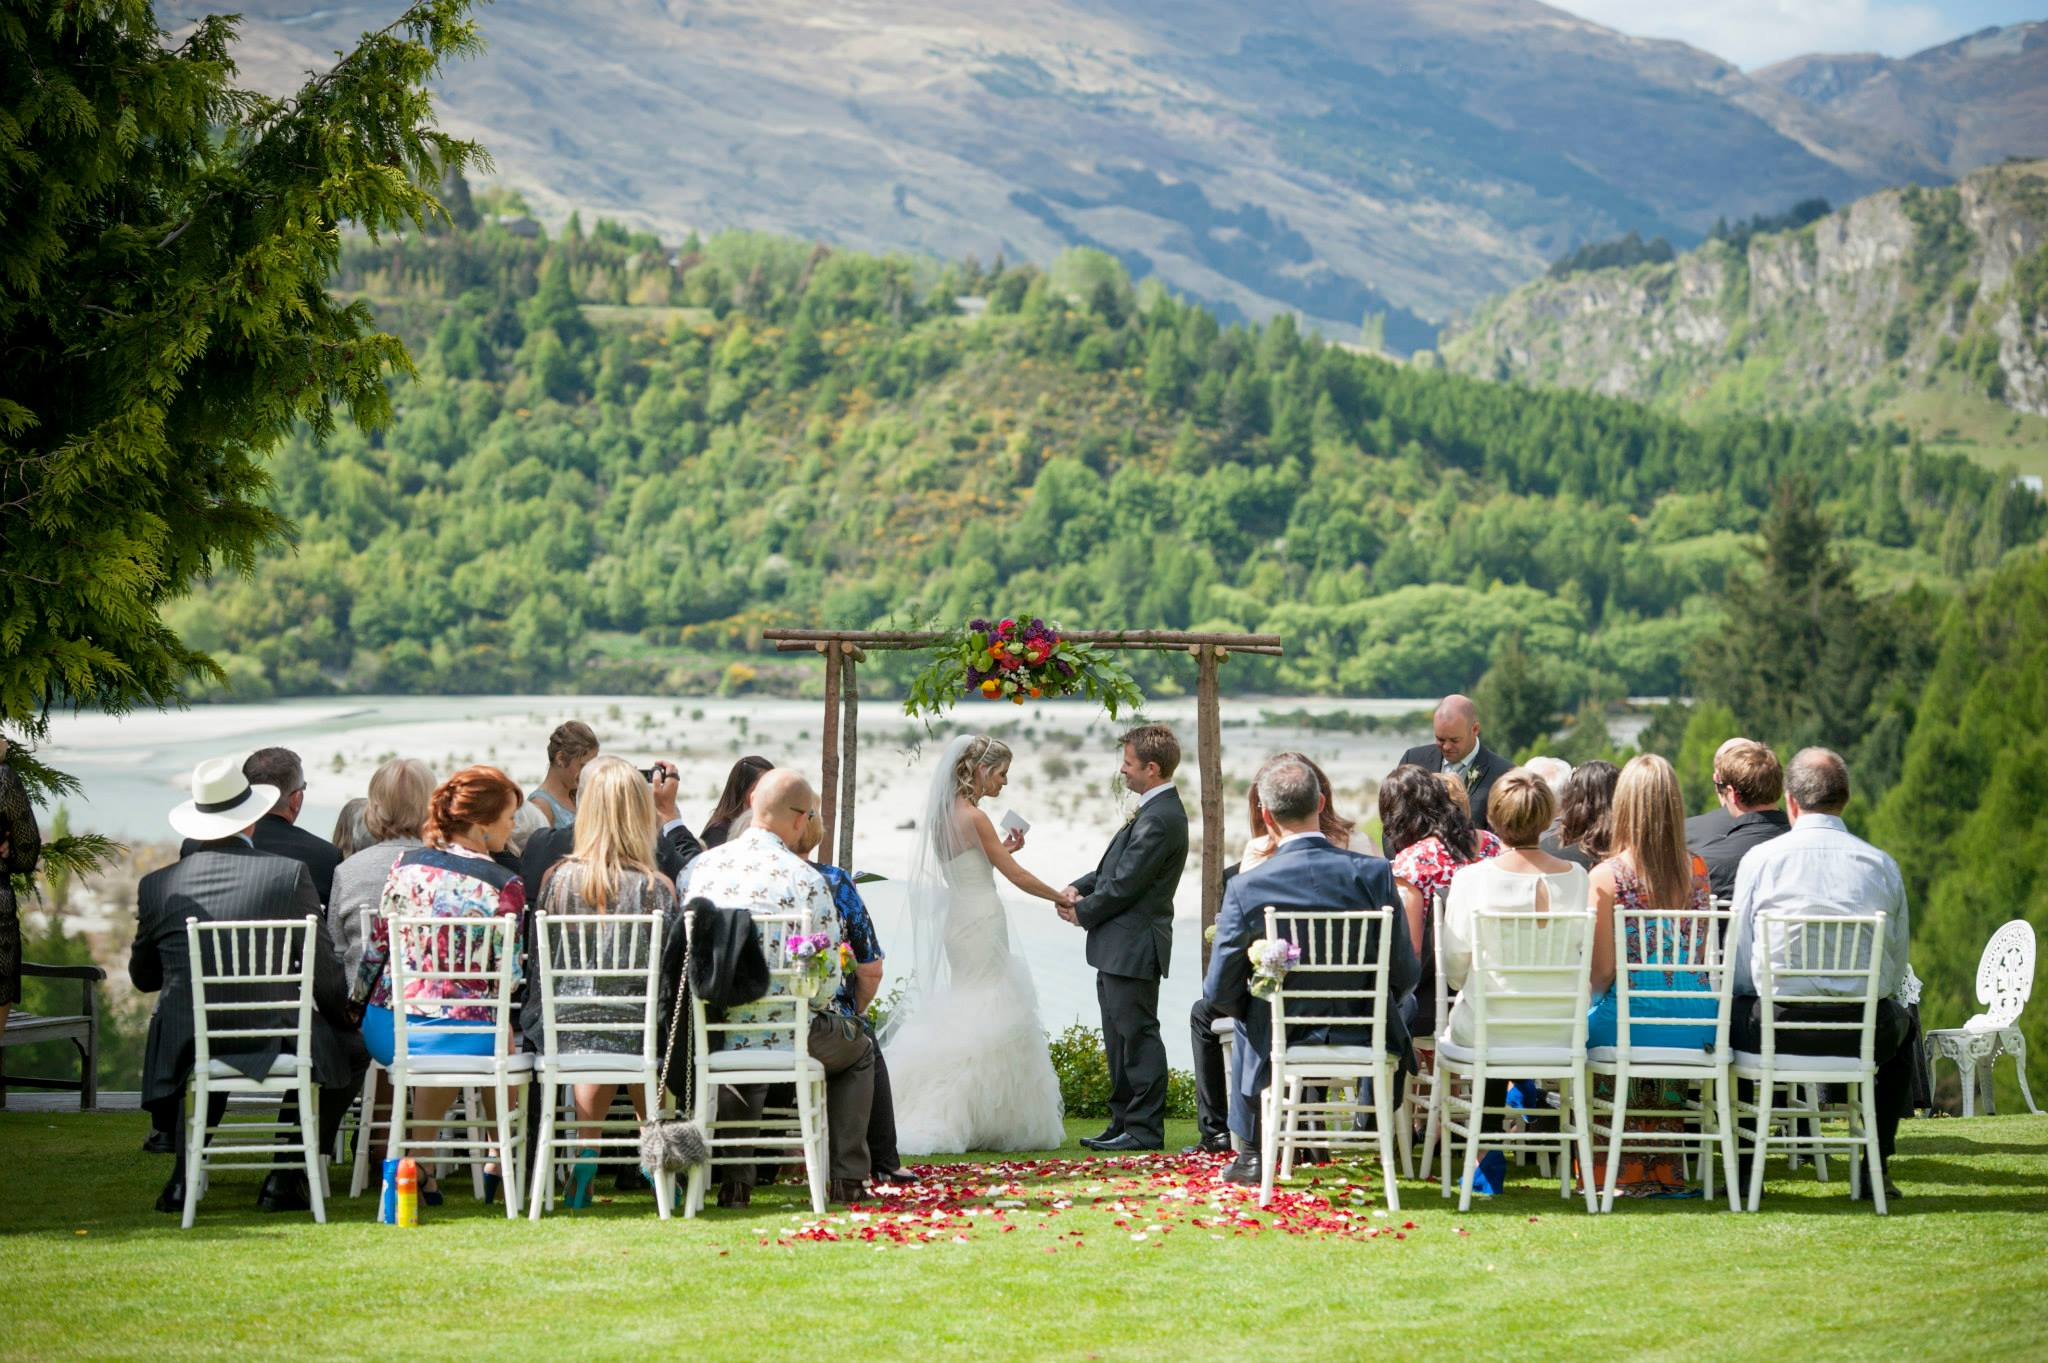 Trelawn place queenstown idyllic wedding venue gallery gallery gallery gallery junglespirit Choice Image